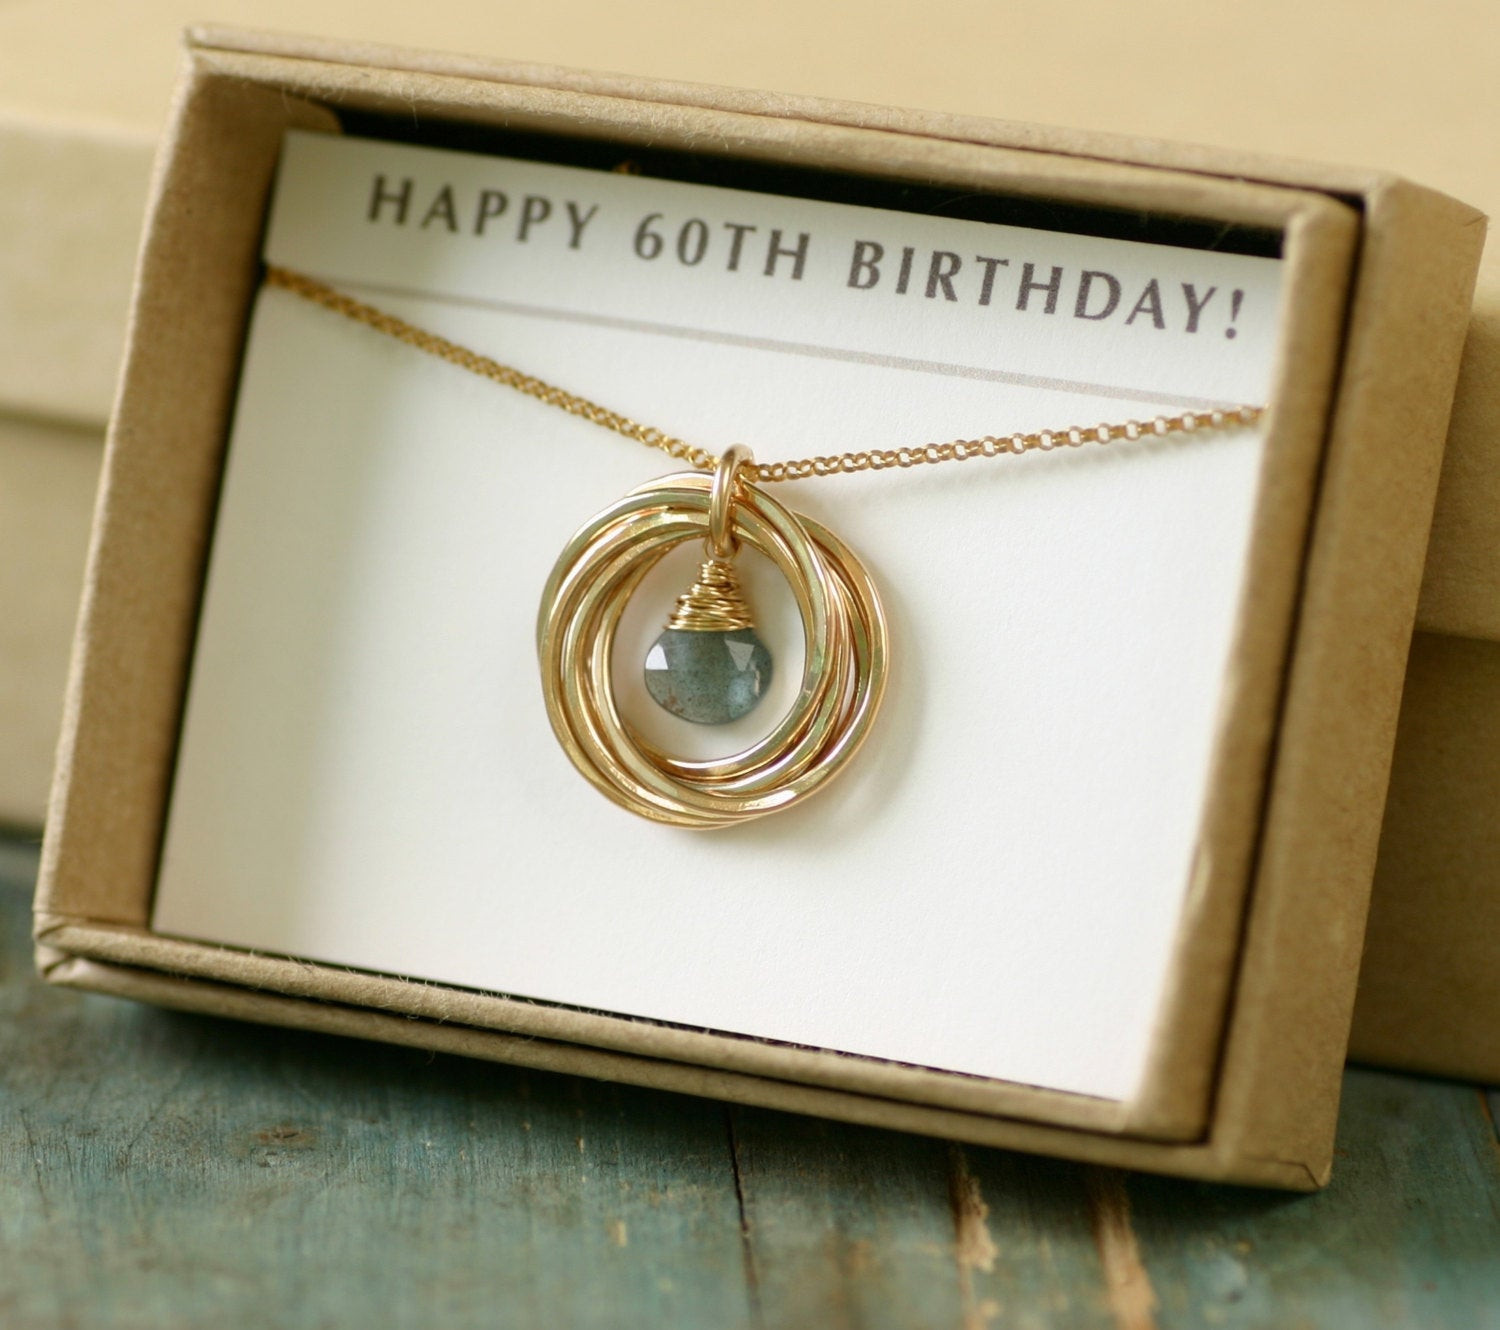 60Th Birthday Gifts For Her  60th birthday t for her aquamarine necklace for mom t